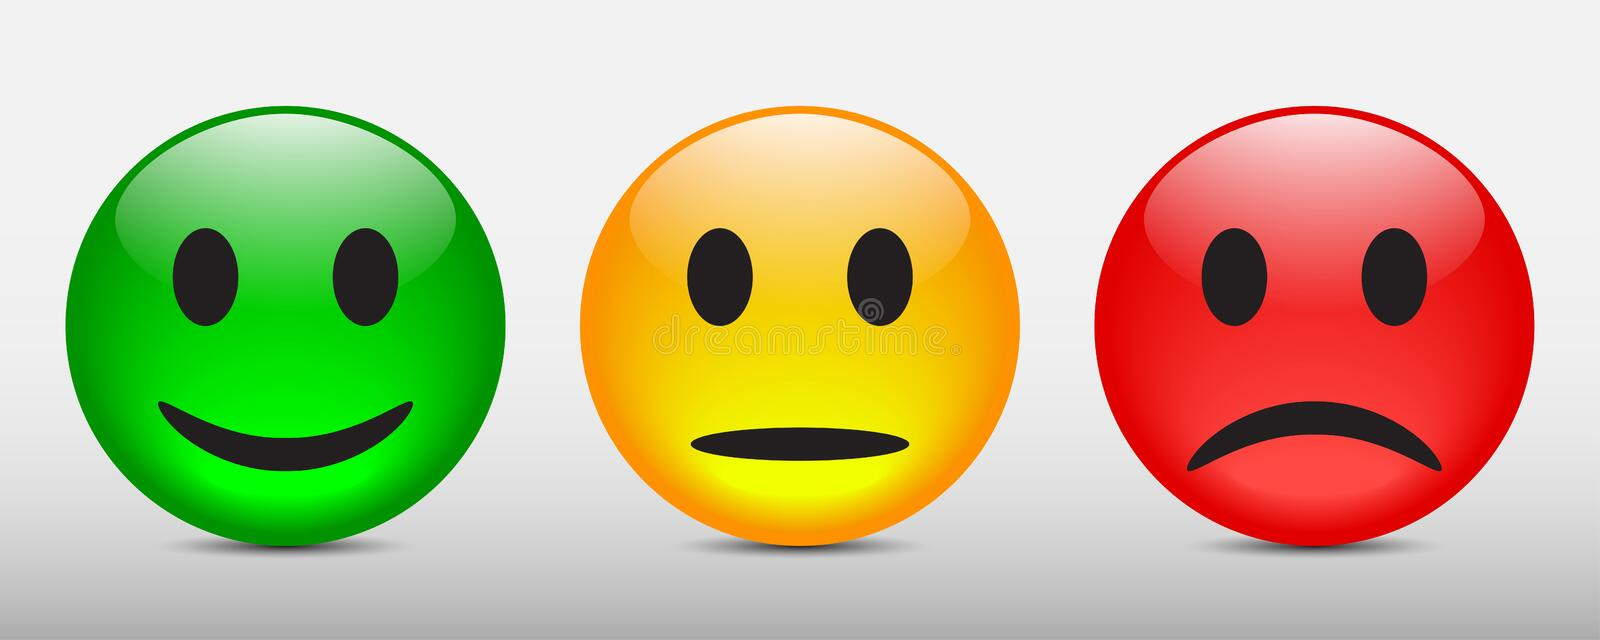 Three colored smilies, set smiley emotion, by smilies, cartoon emoticons - vector. Three colored smilies, set smiley emotion, by smilies, cartoon emoticons - for stock illustration